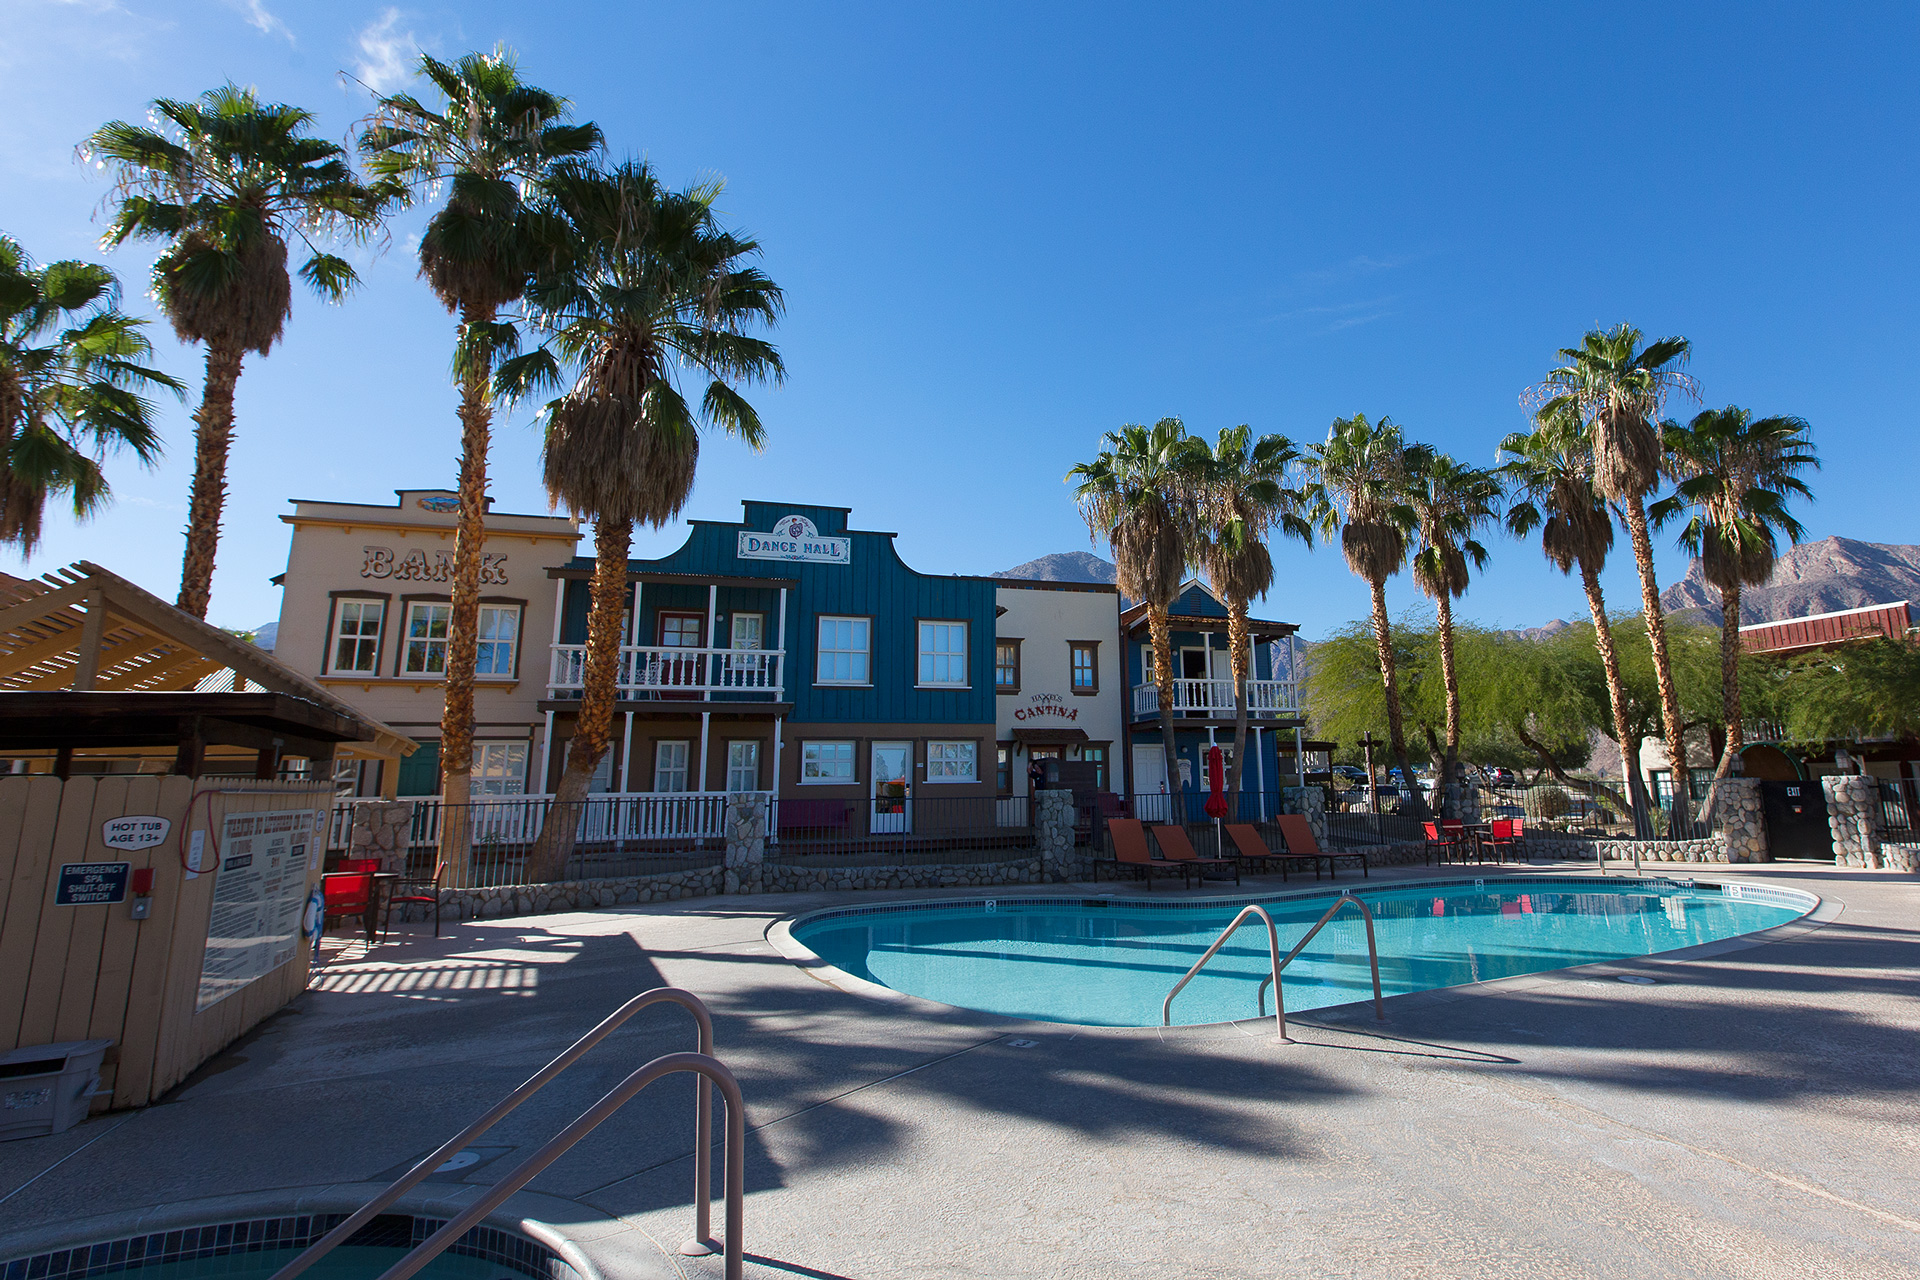 one of 2 pools at the palm canyon hotel rv resort - Canyons Resort Hotels